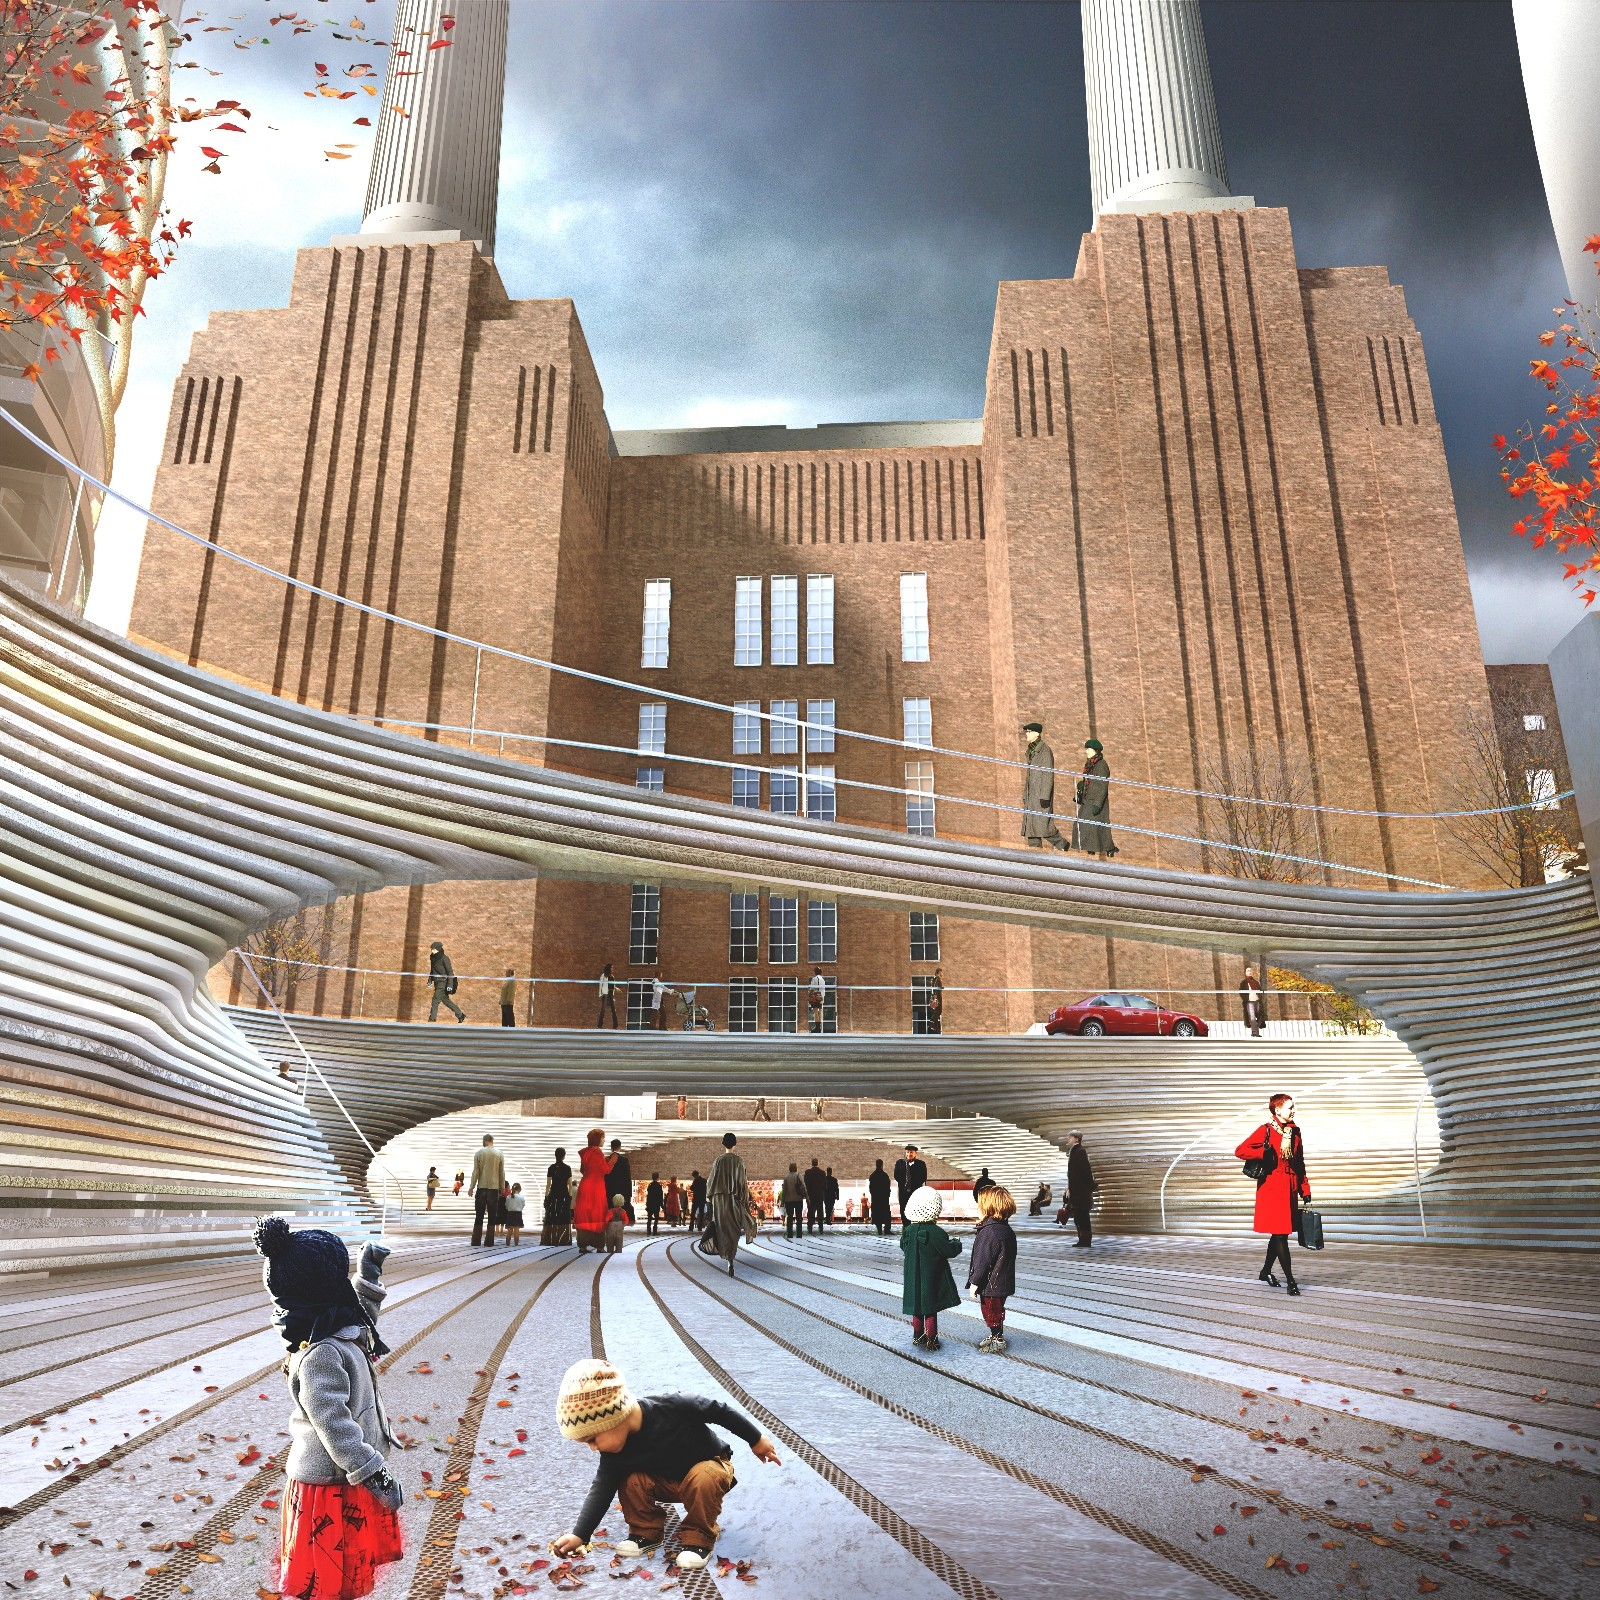 BIG Unveils Design For Battersea Power Station Square, Courtesy of Battersea Power Station Development Company